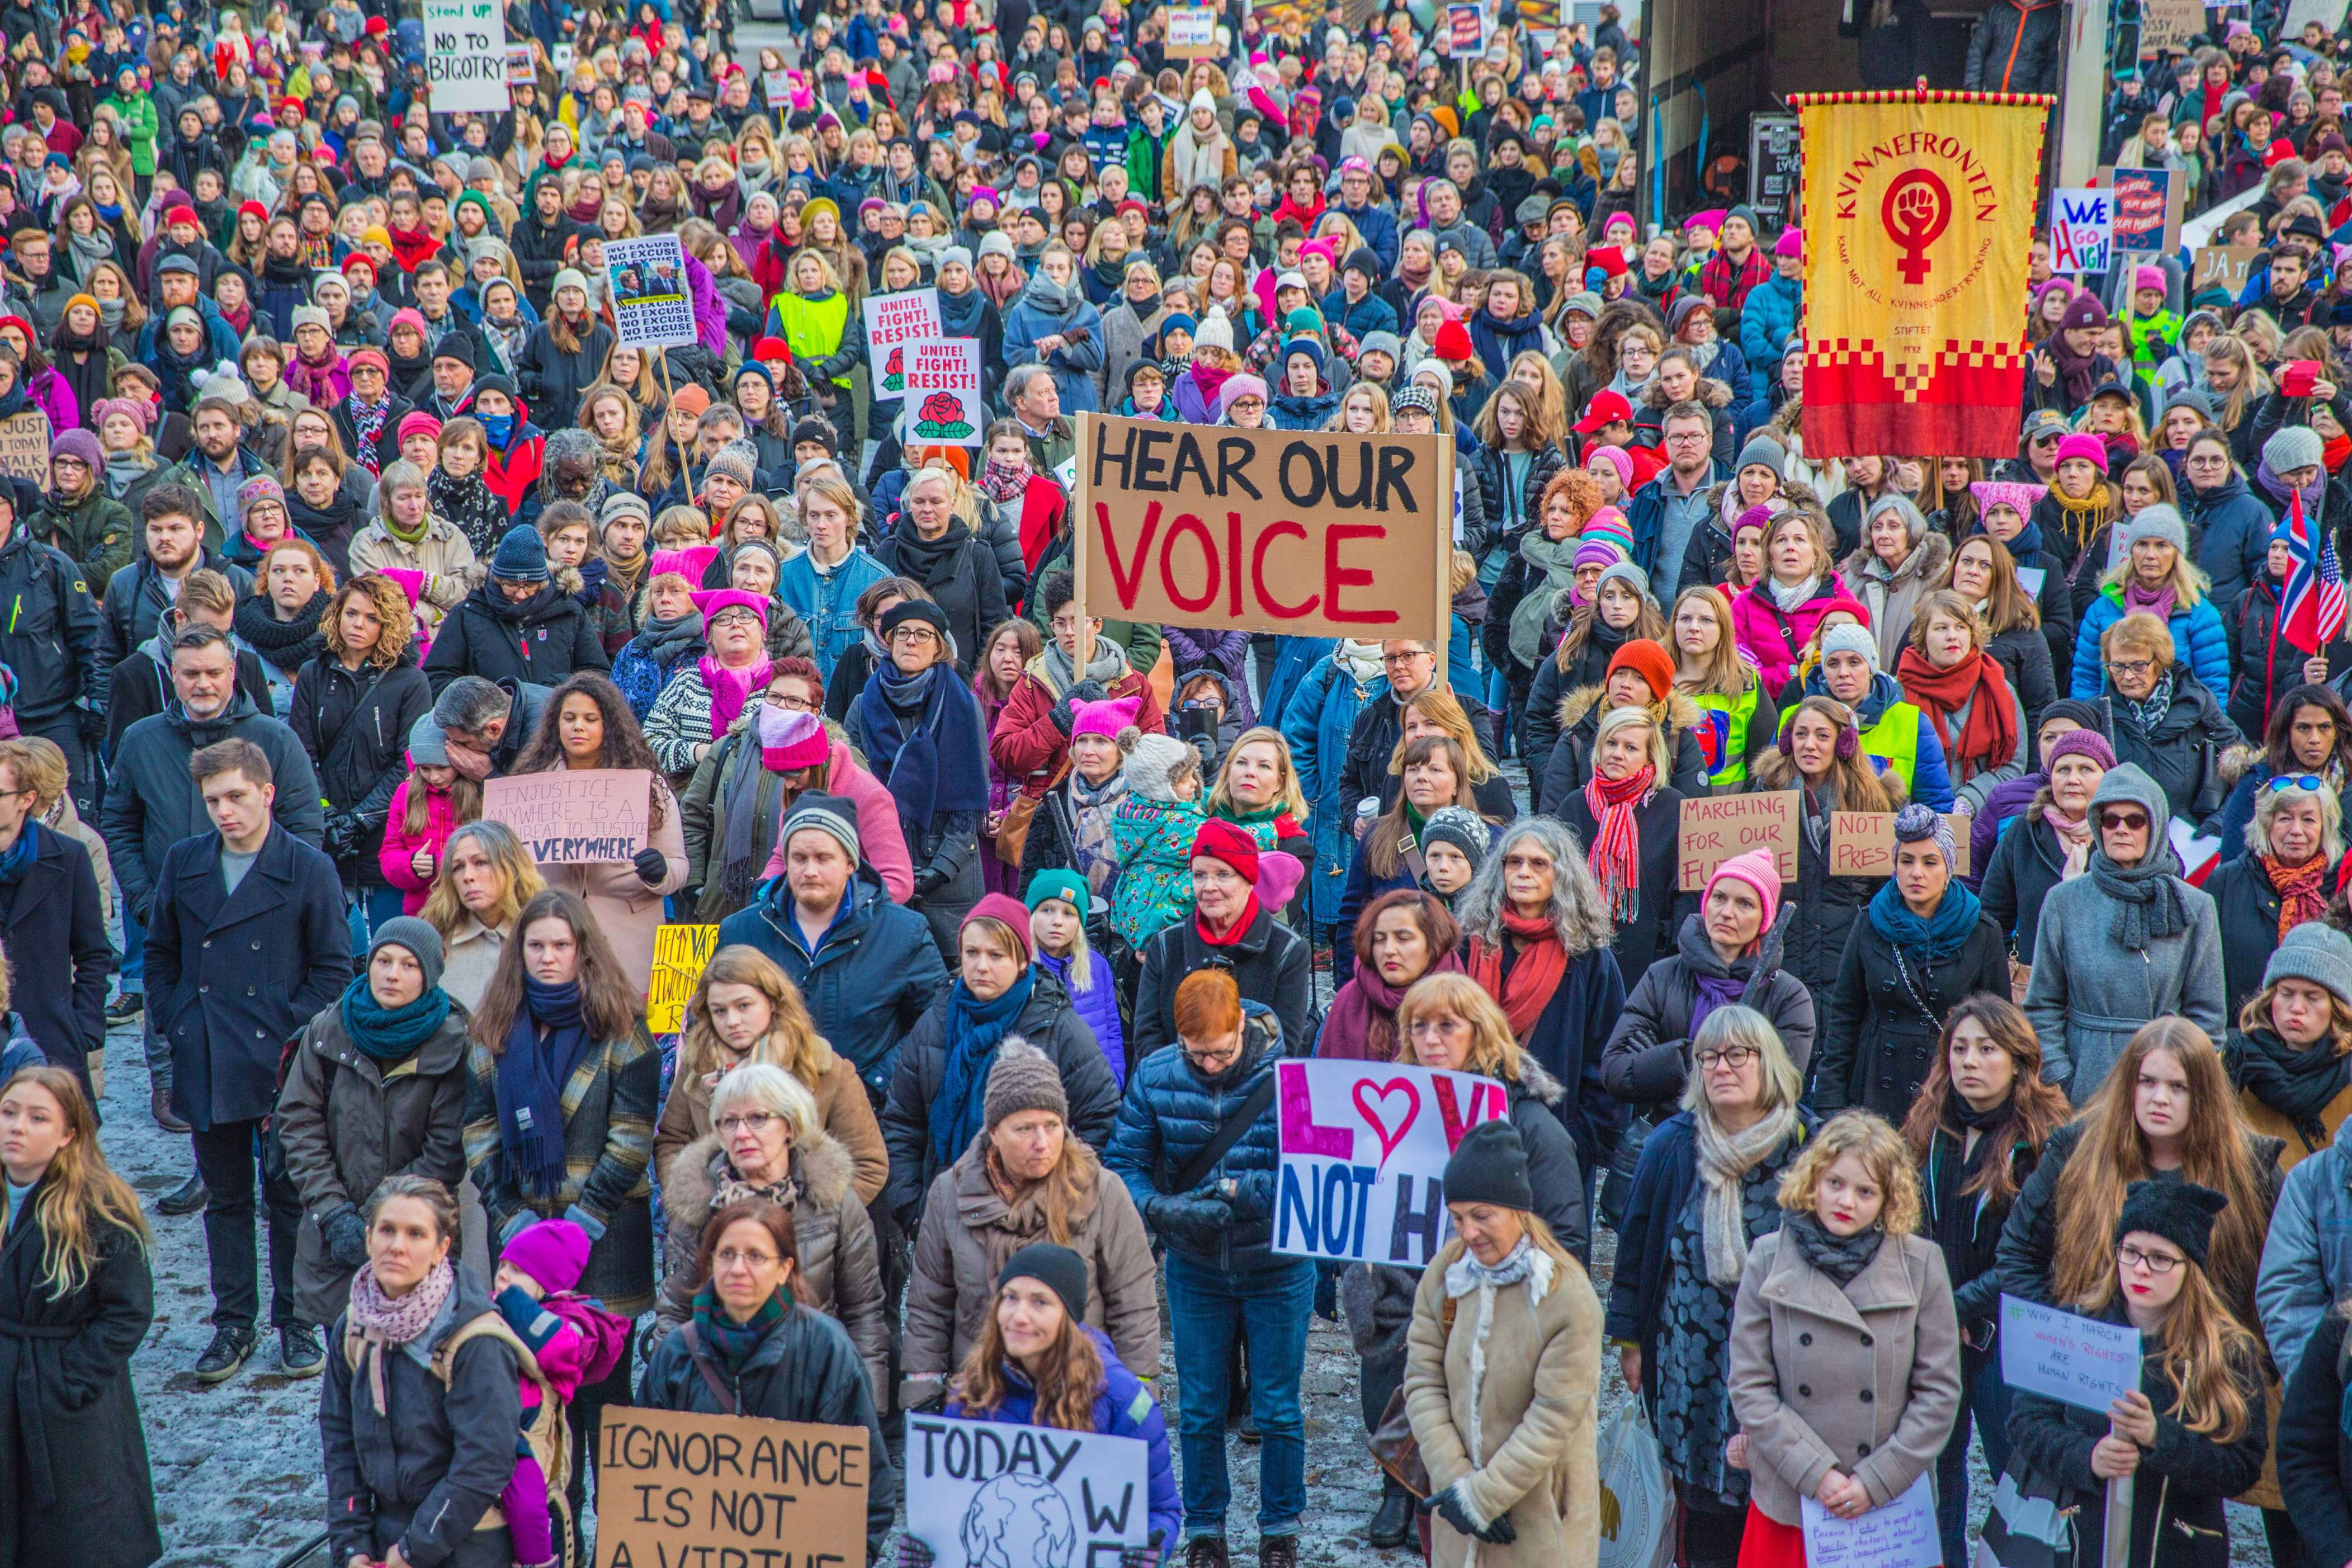 Slide 35 of 35: Protesters gather for the Women's March in Oslo, Norway, January 21, 2017. The march is being held in solidarity with similar events taking place internationaly. / AFP / NTB Scanpix / Stian Lysberg SOLUM / Norway OUT        (Photo credit should read STIAN LYSBERG SOLUM/AFP/Getty Images)